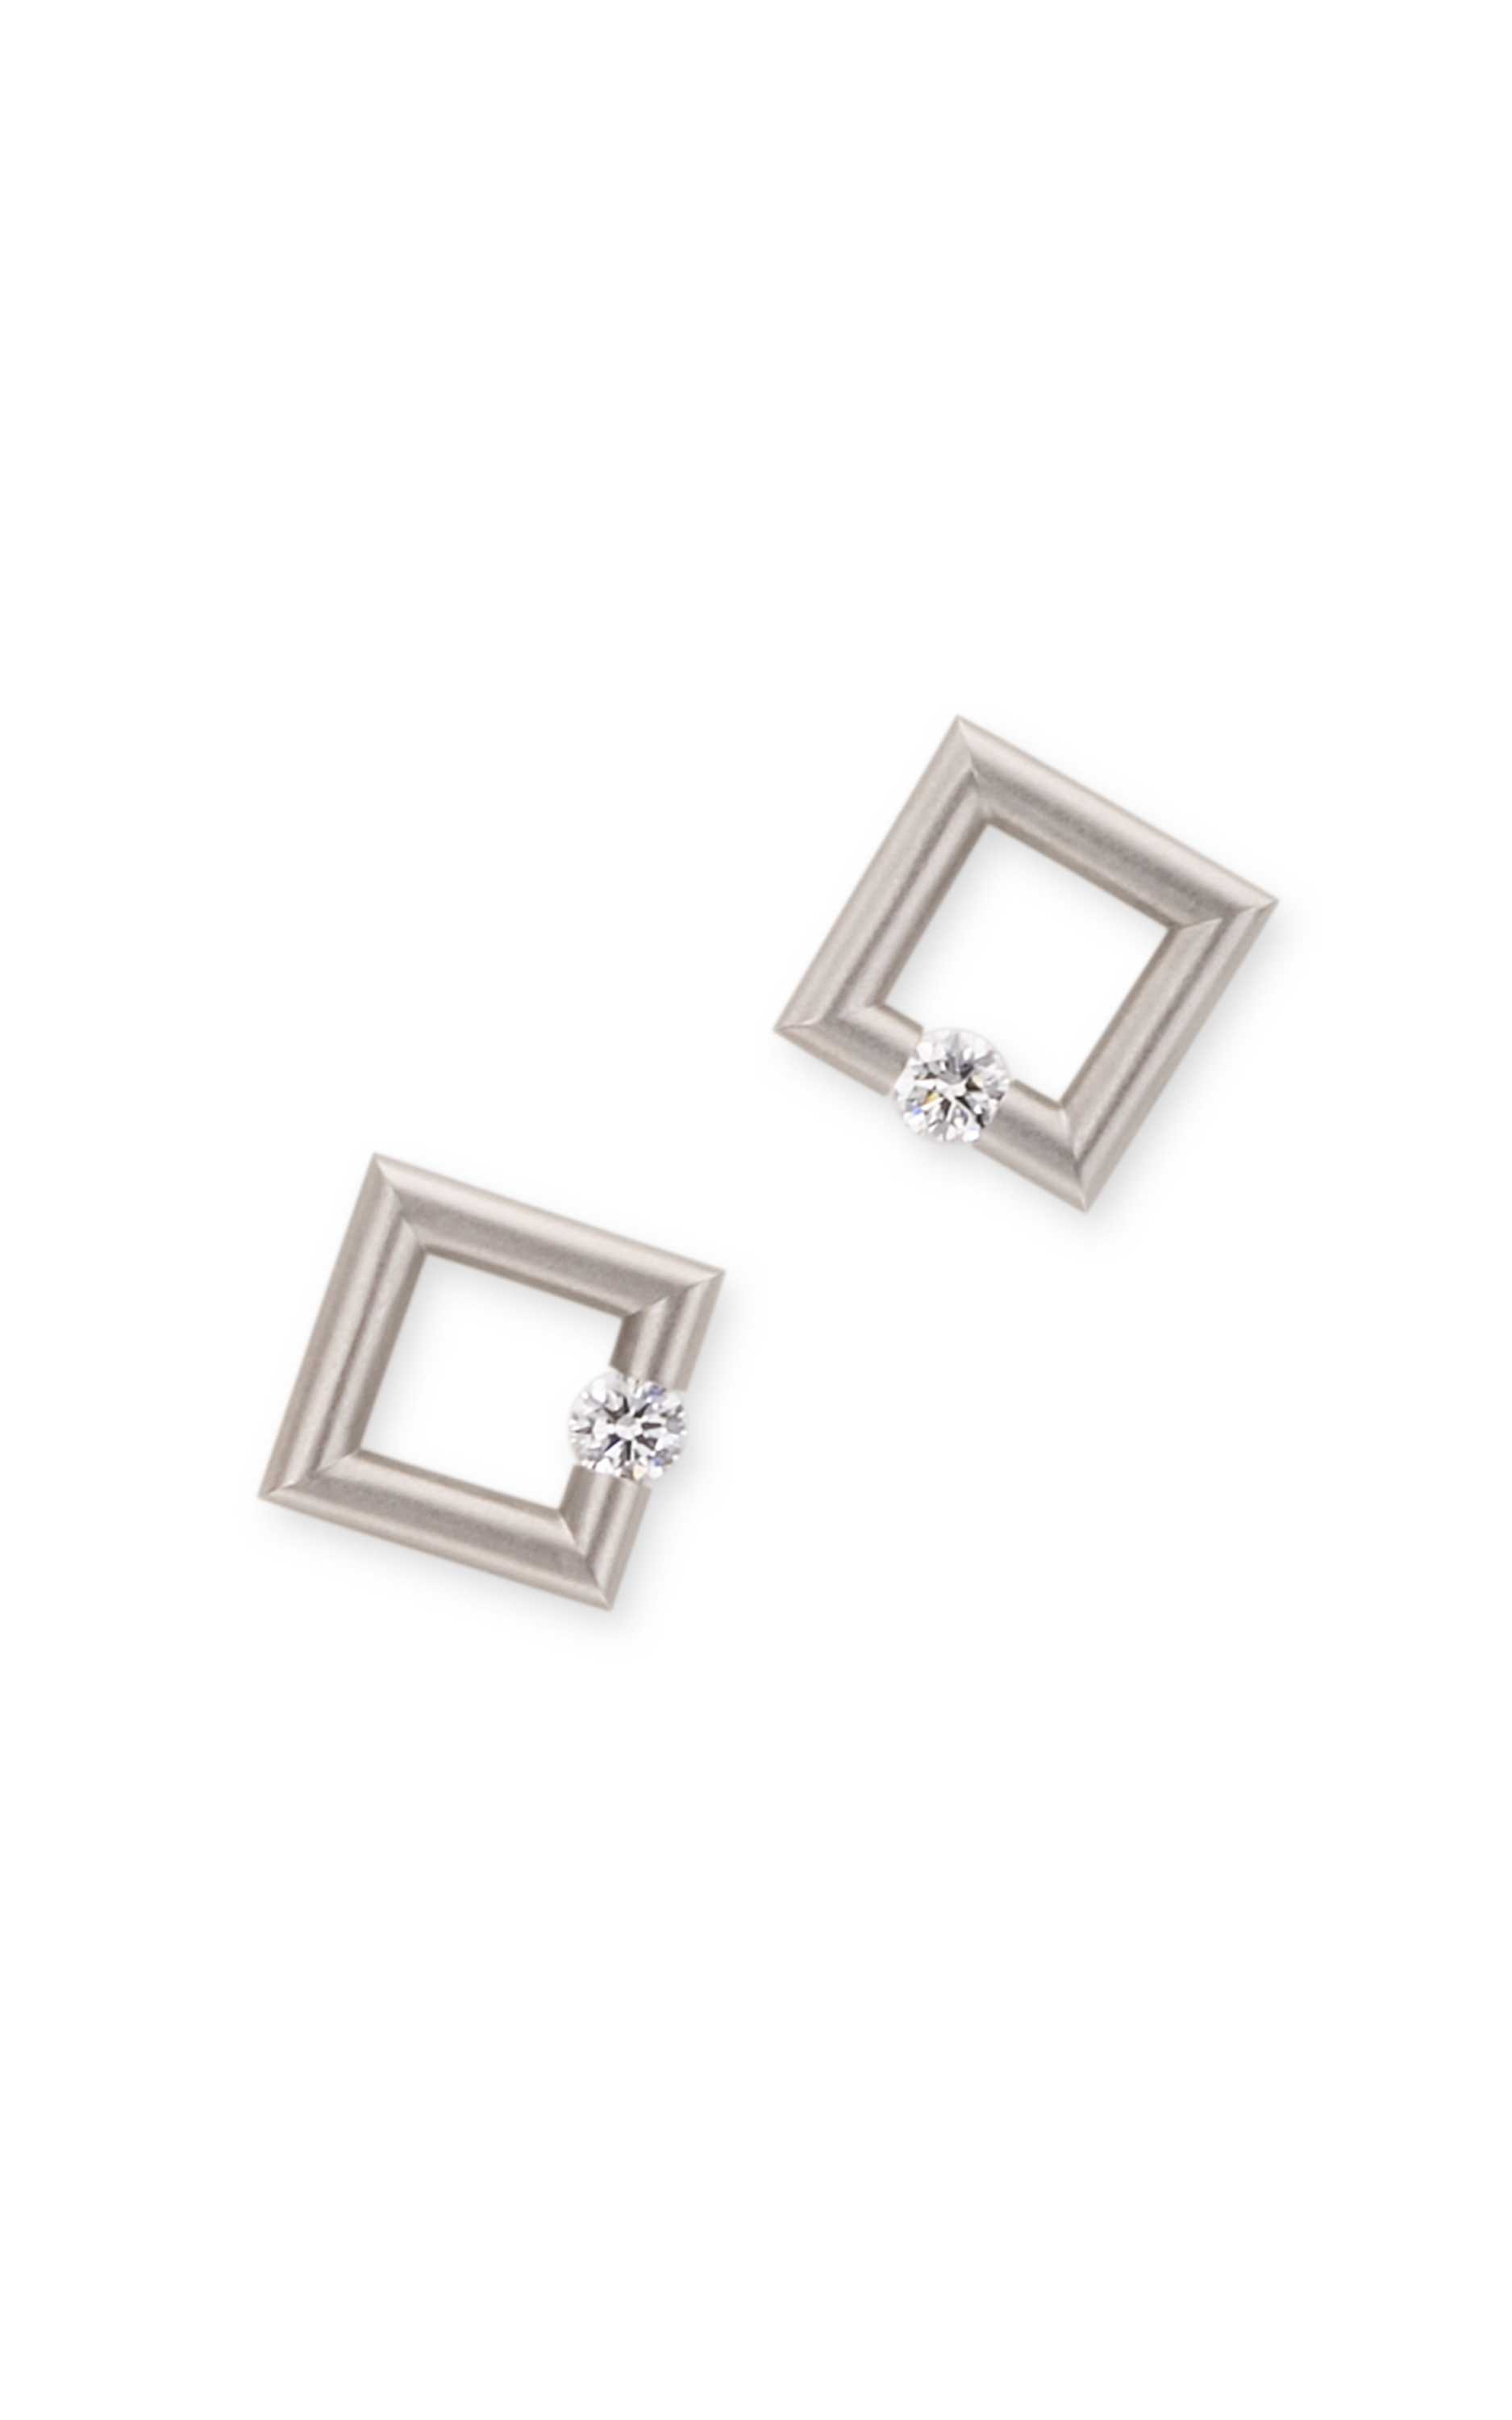 Find Steven Kretchmer Micro Square Earrings